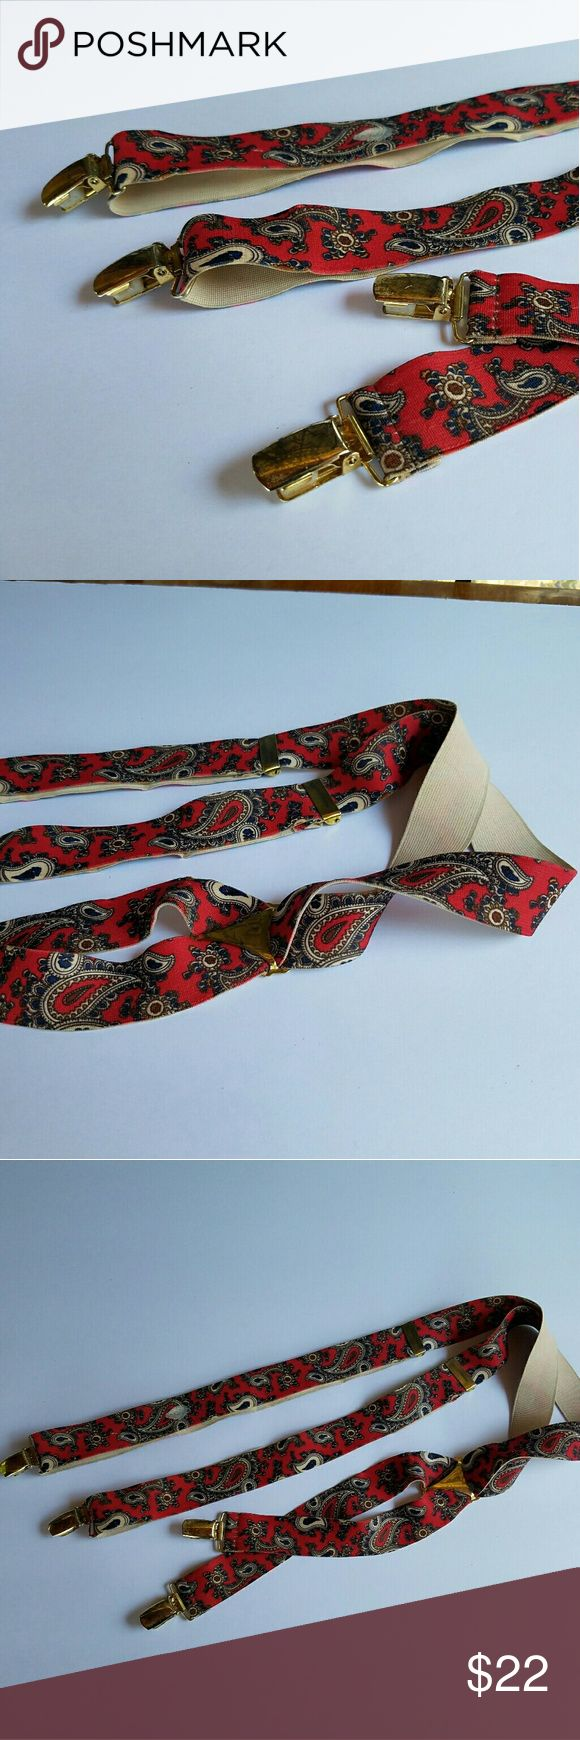 Vintage Paisley Suspenders Red Paisley with Gold Accents. EUC. All Clasps intack. Accessories Belts